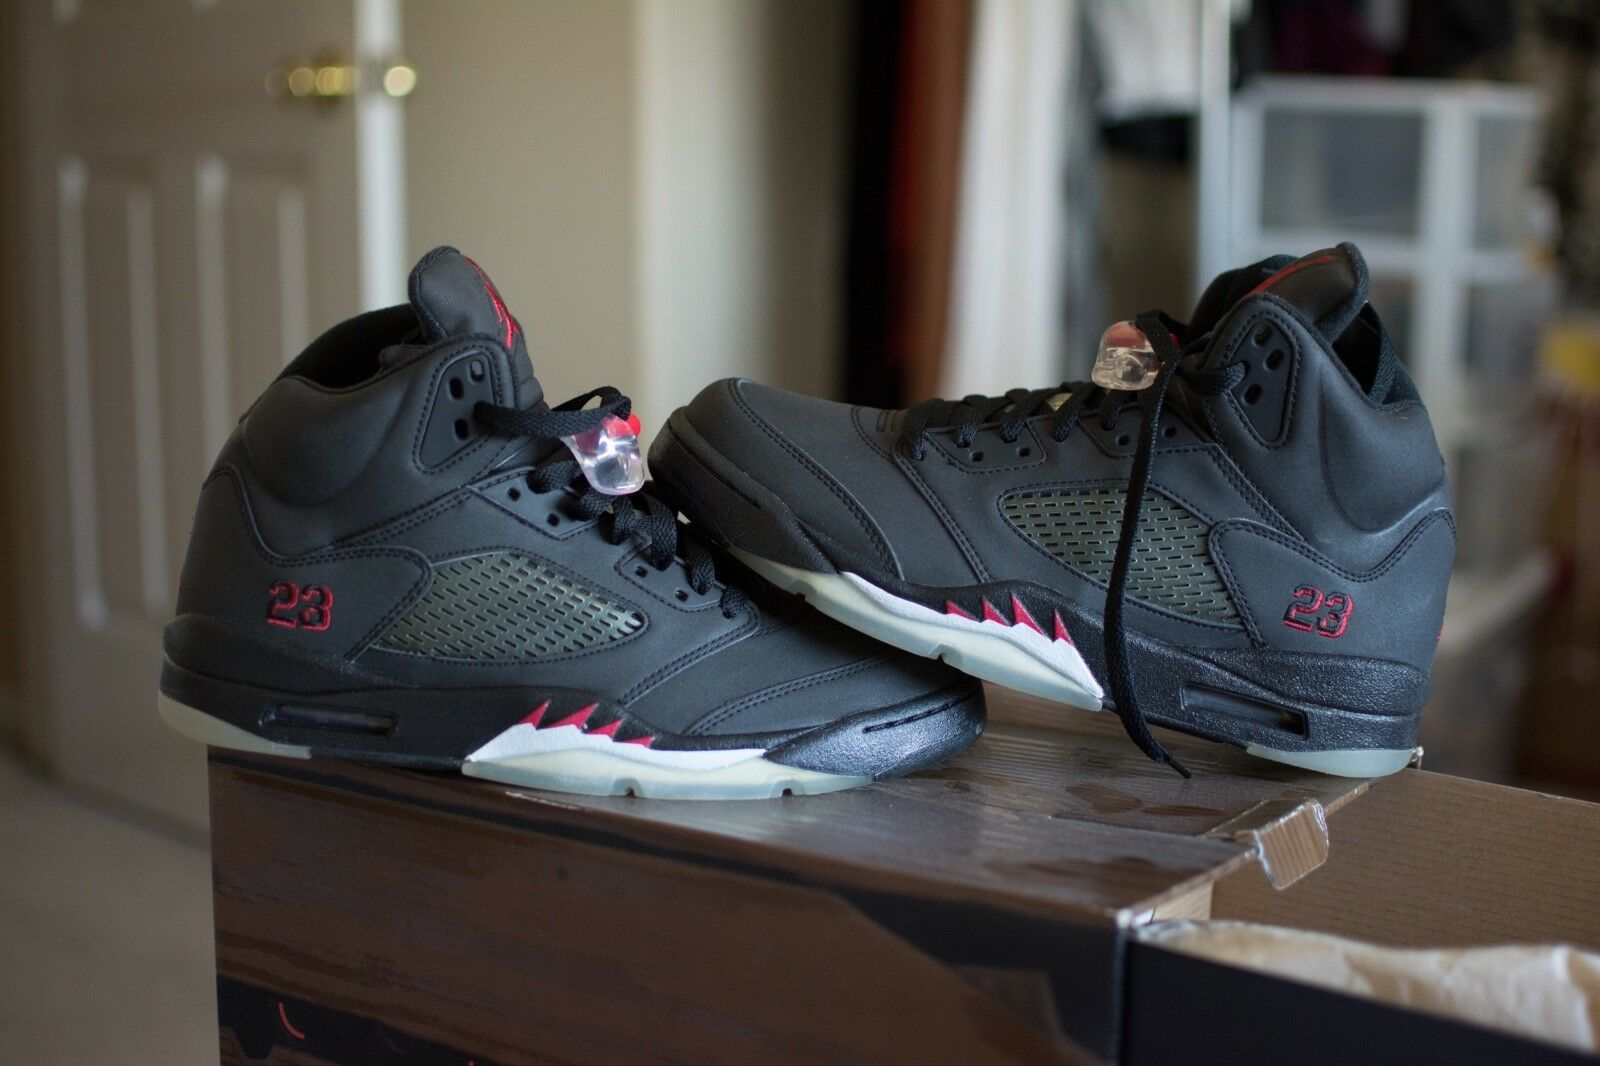 New Air Jordan 5 Retro DMP  Raging Bulls Package""